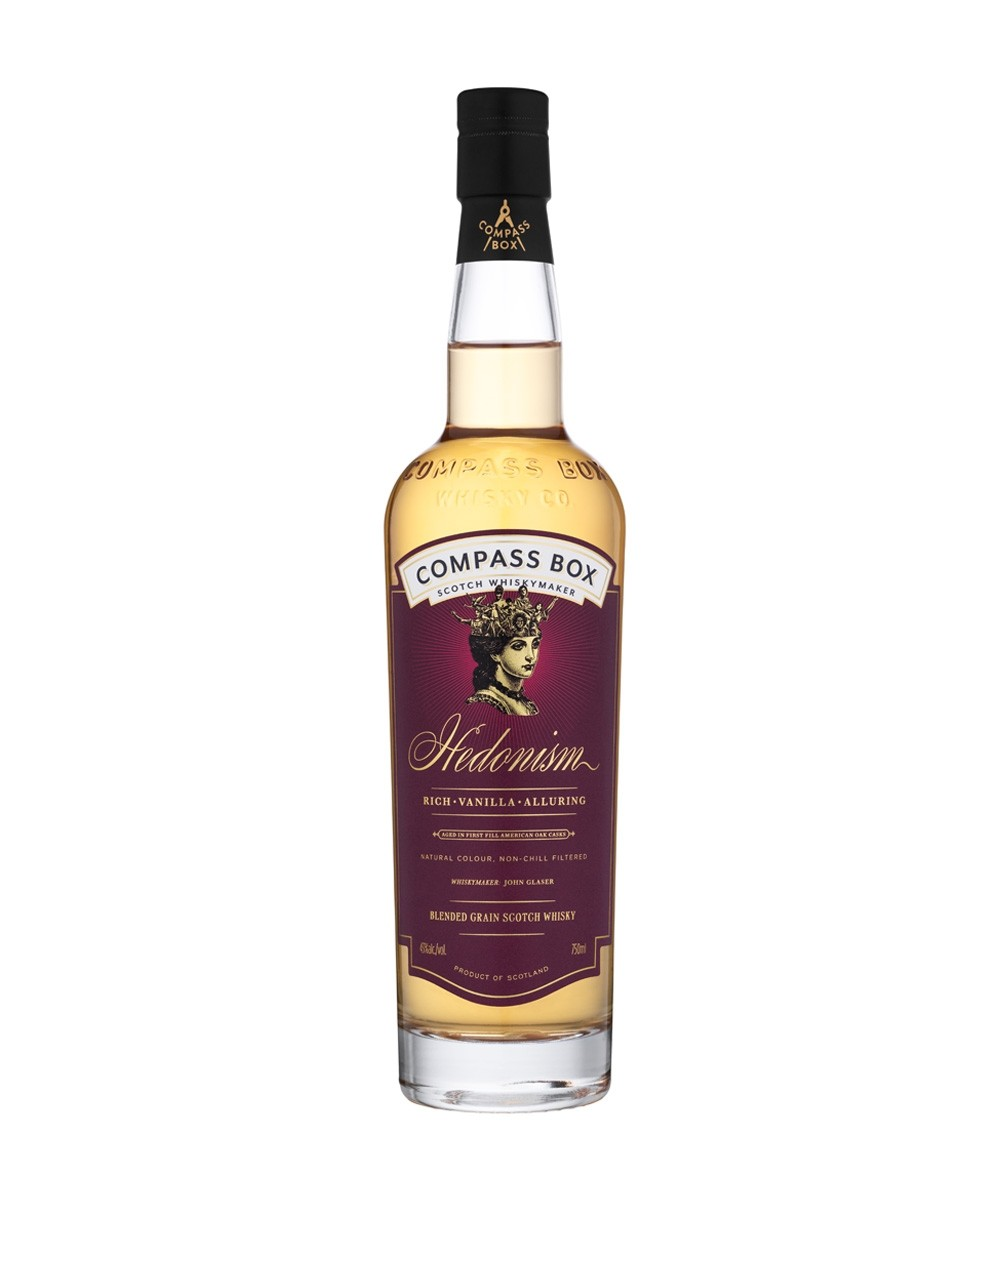 Compass Box Hedonism Buy Online Or Send As A Gift Reservebar